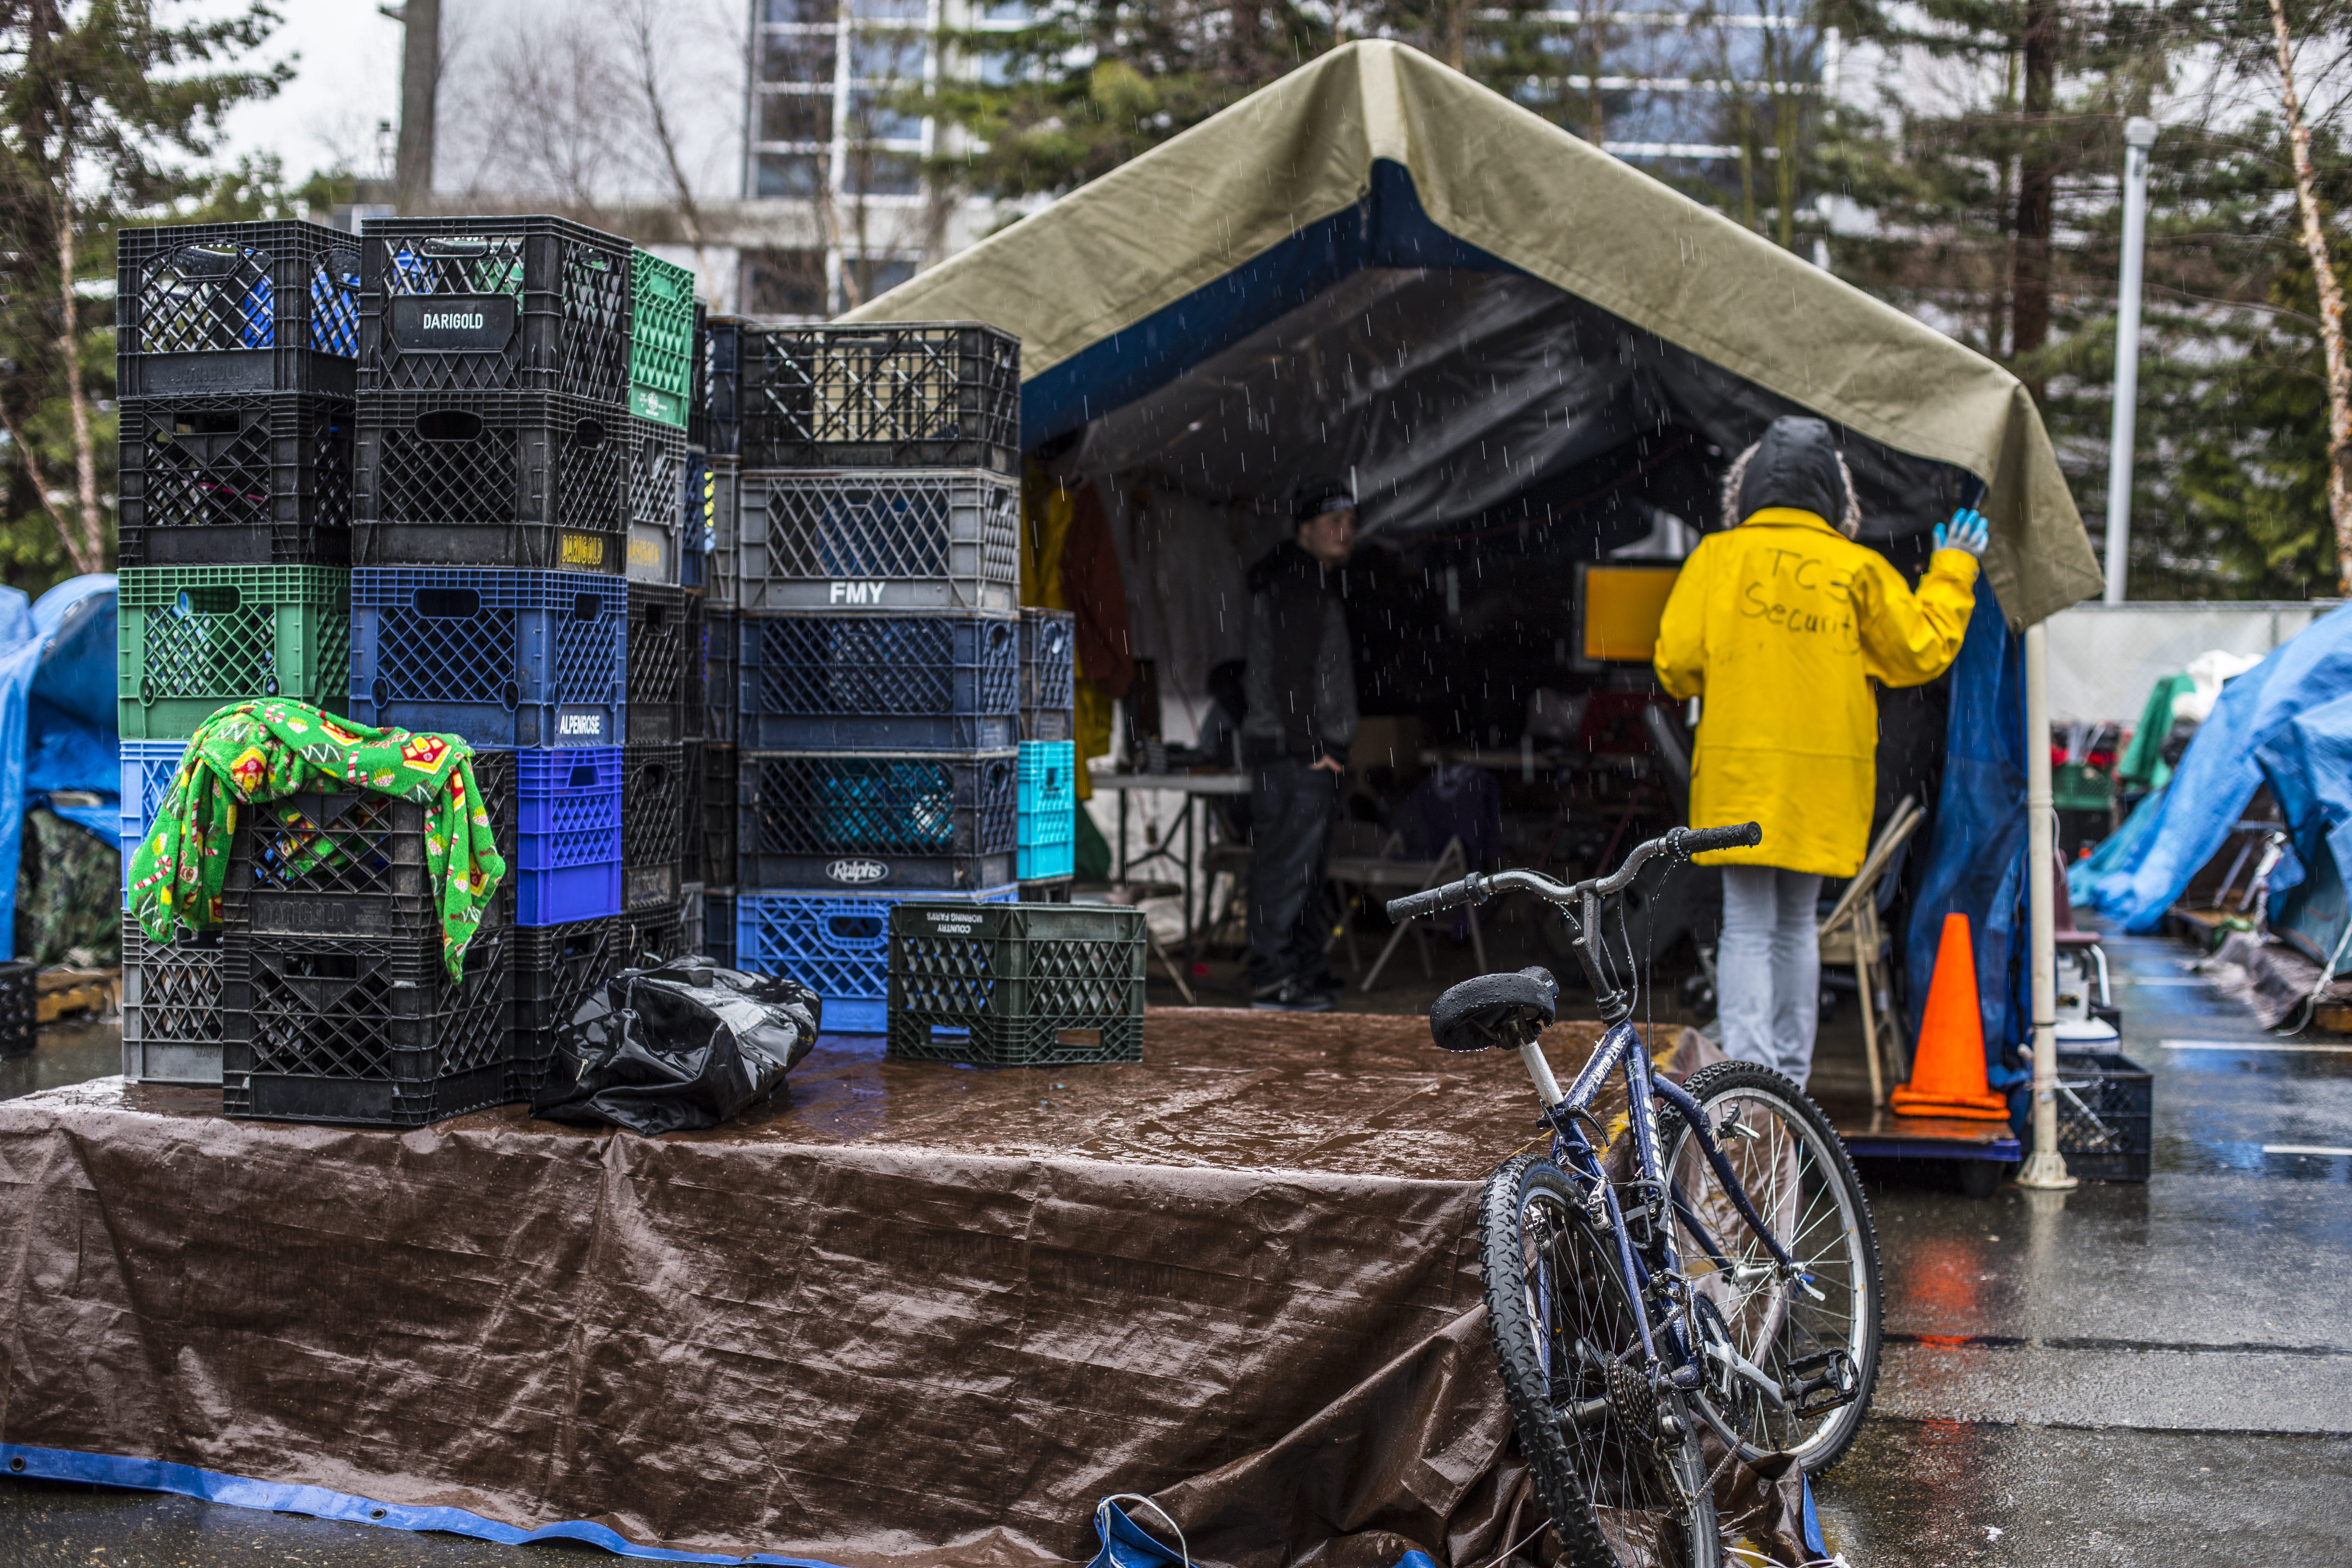 Tent City 3's security patrol checks on a tent